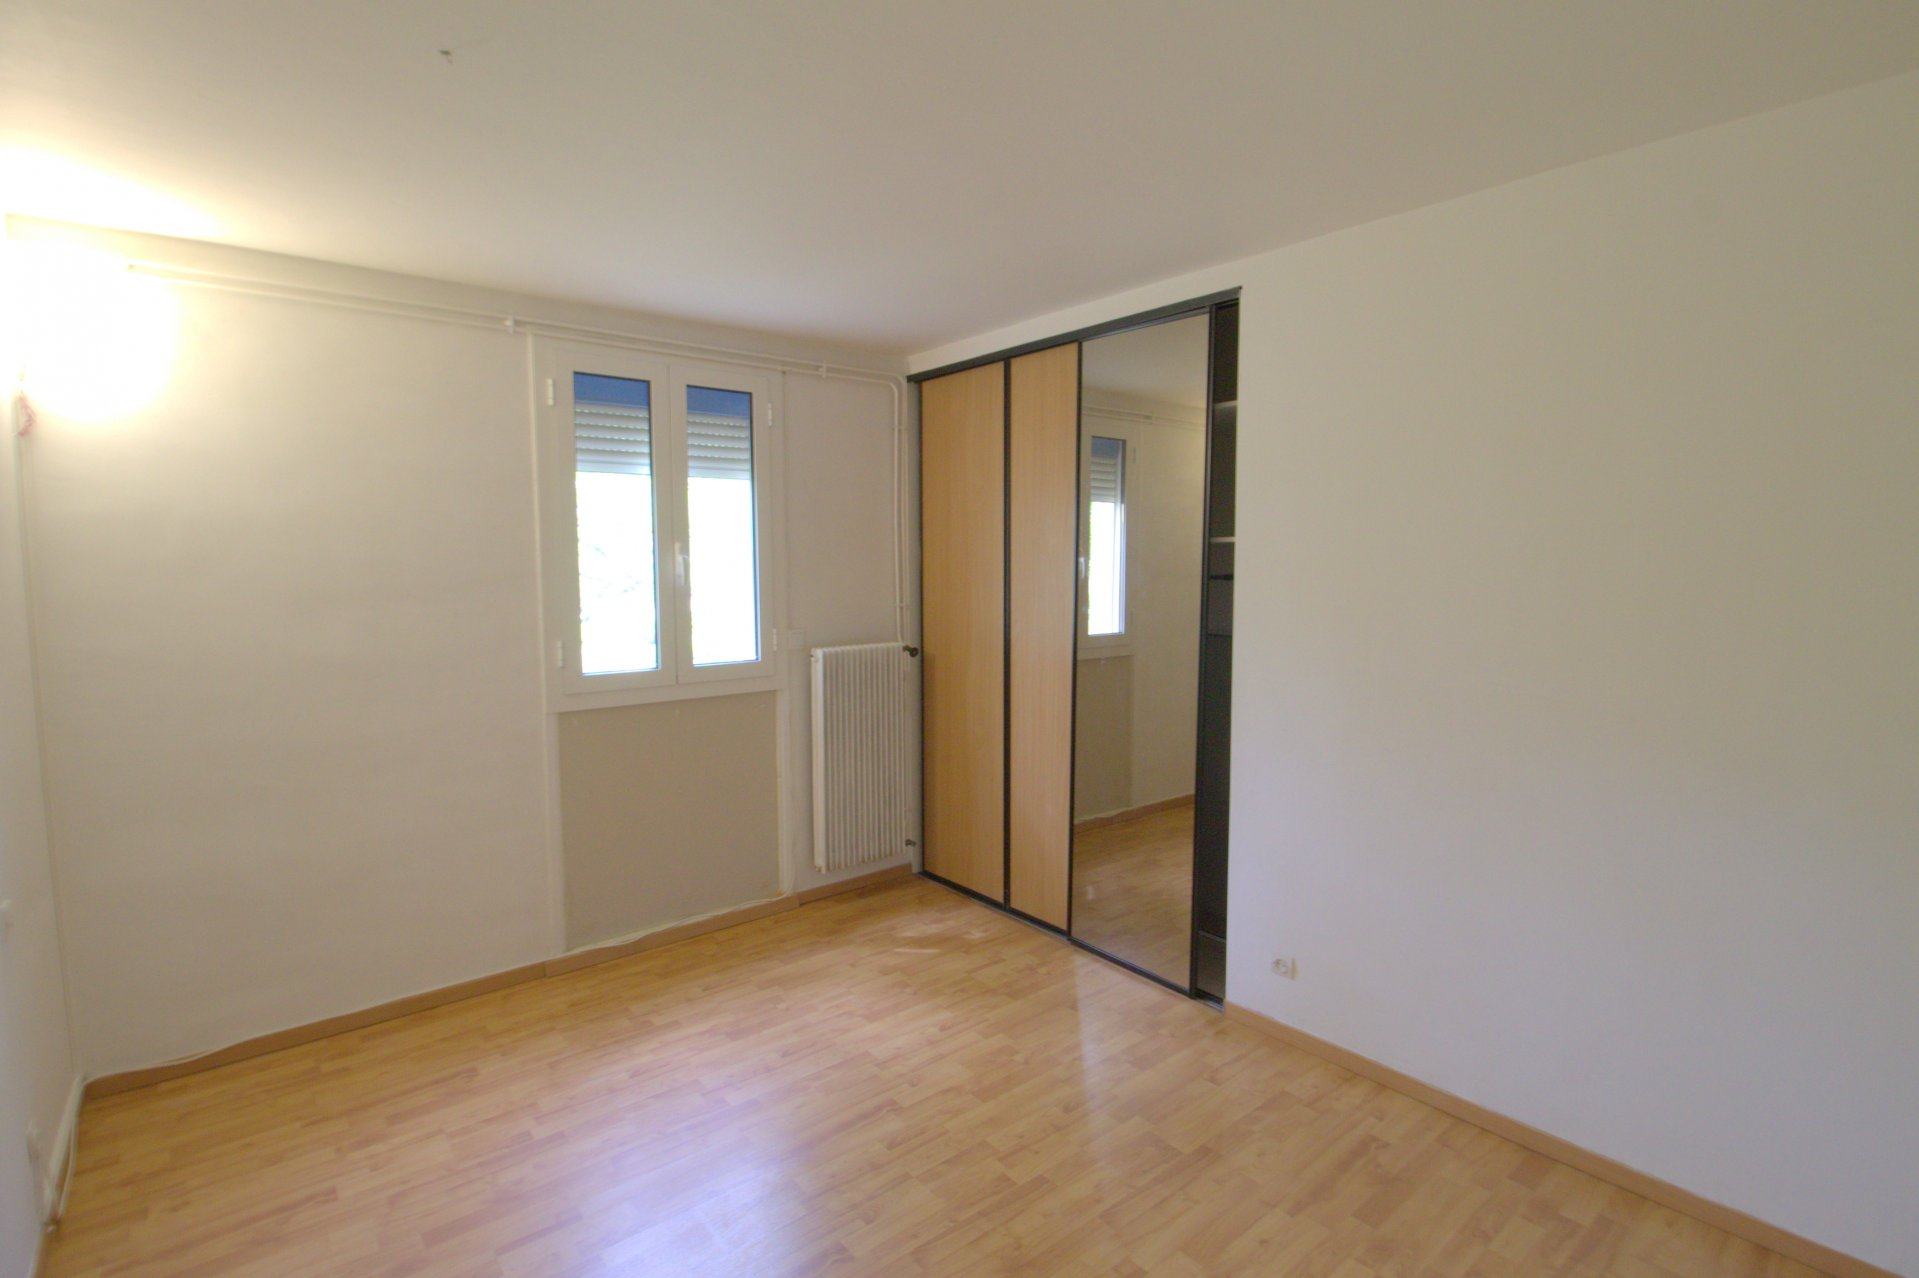 Vente appartement 3 chambres - Arles Trinquetaille